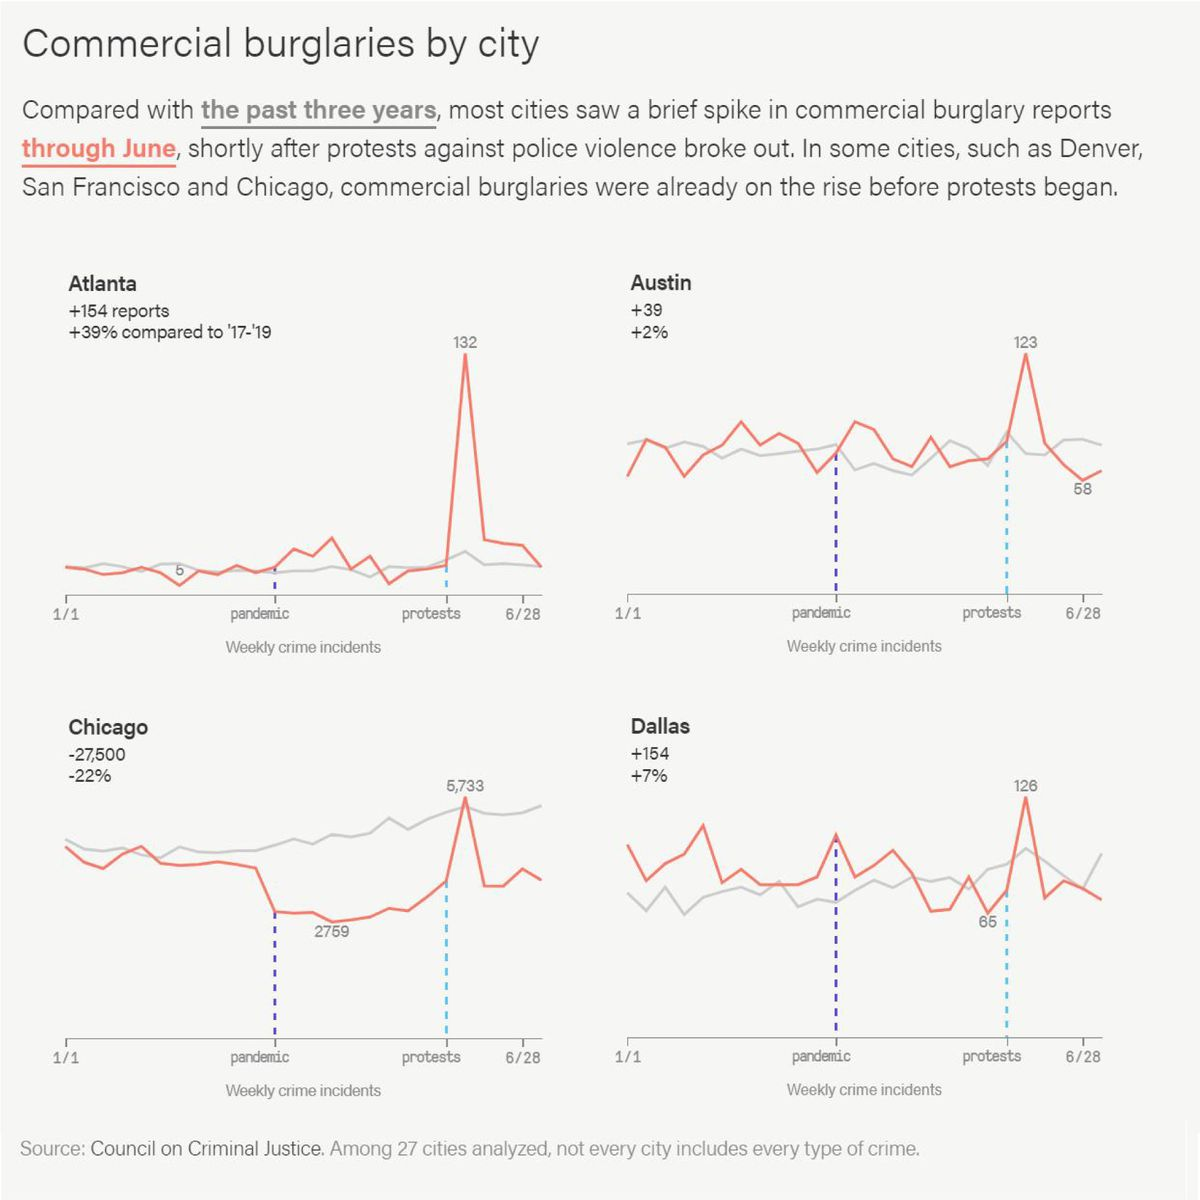 Compared with the past three years, most cities saw a brief spike in commercial burglary reports through June, shortly after protests against police violence broke out. In some cities, such as Denver, San Francisco and Chicago, commercial burglaries were already on the rise before protests began.